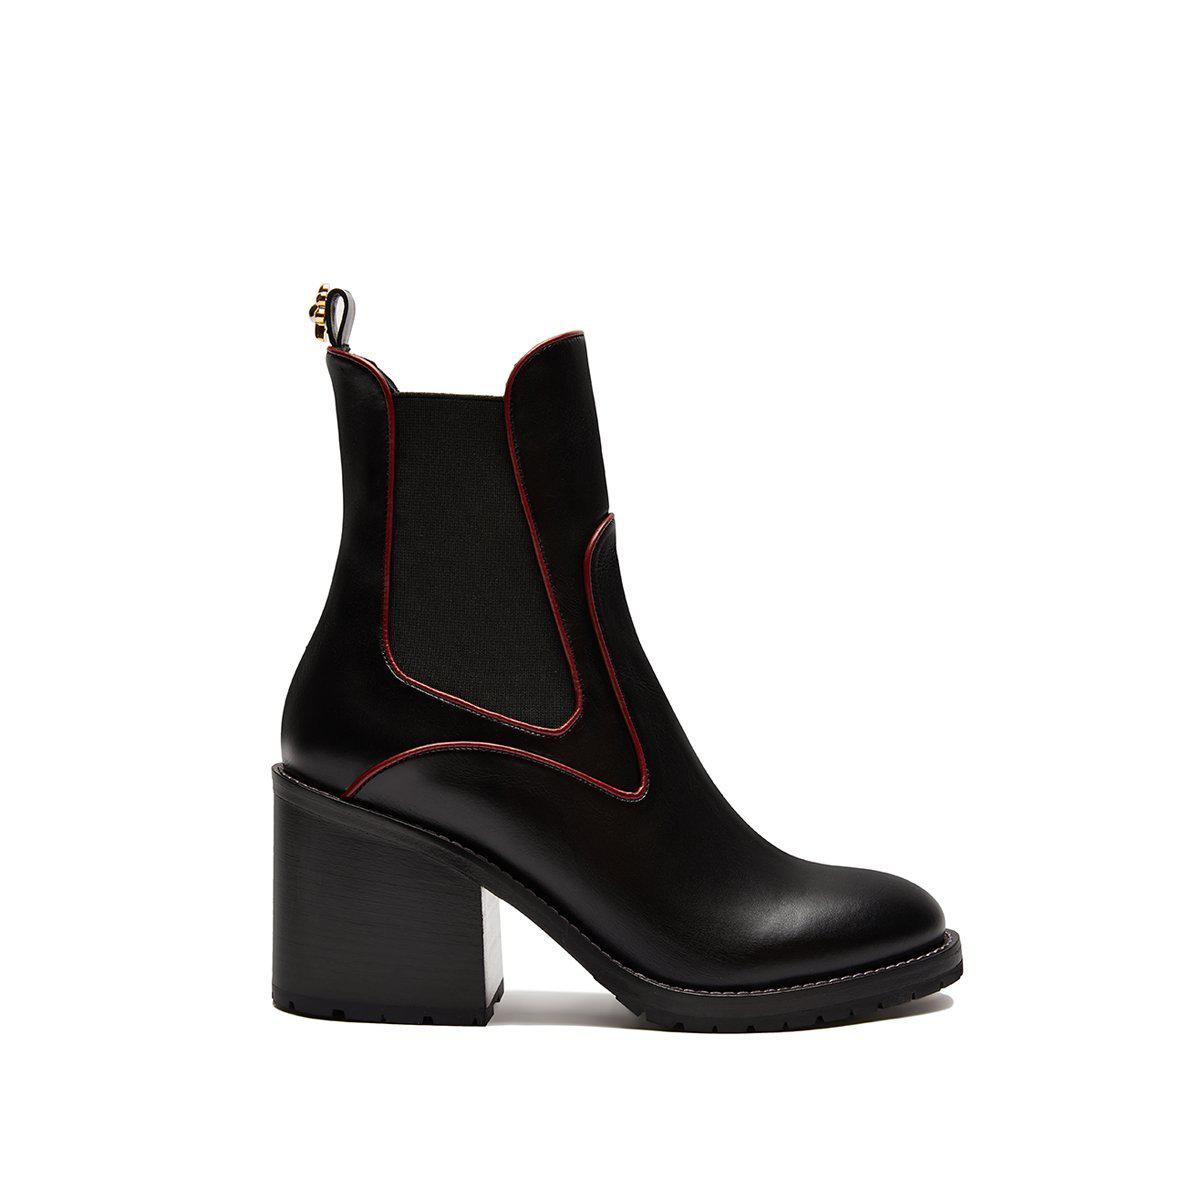 Madison Boot 65 - Black With Bordeaux Piping